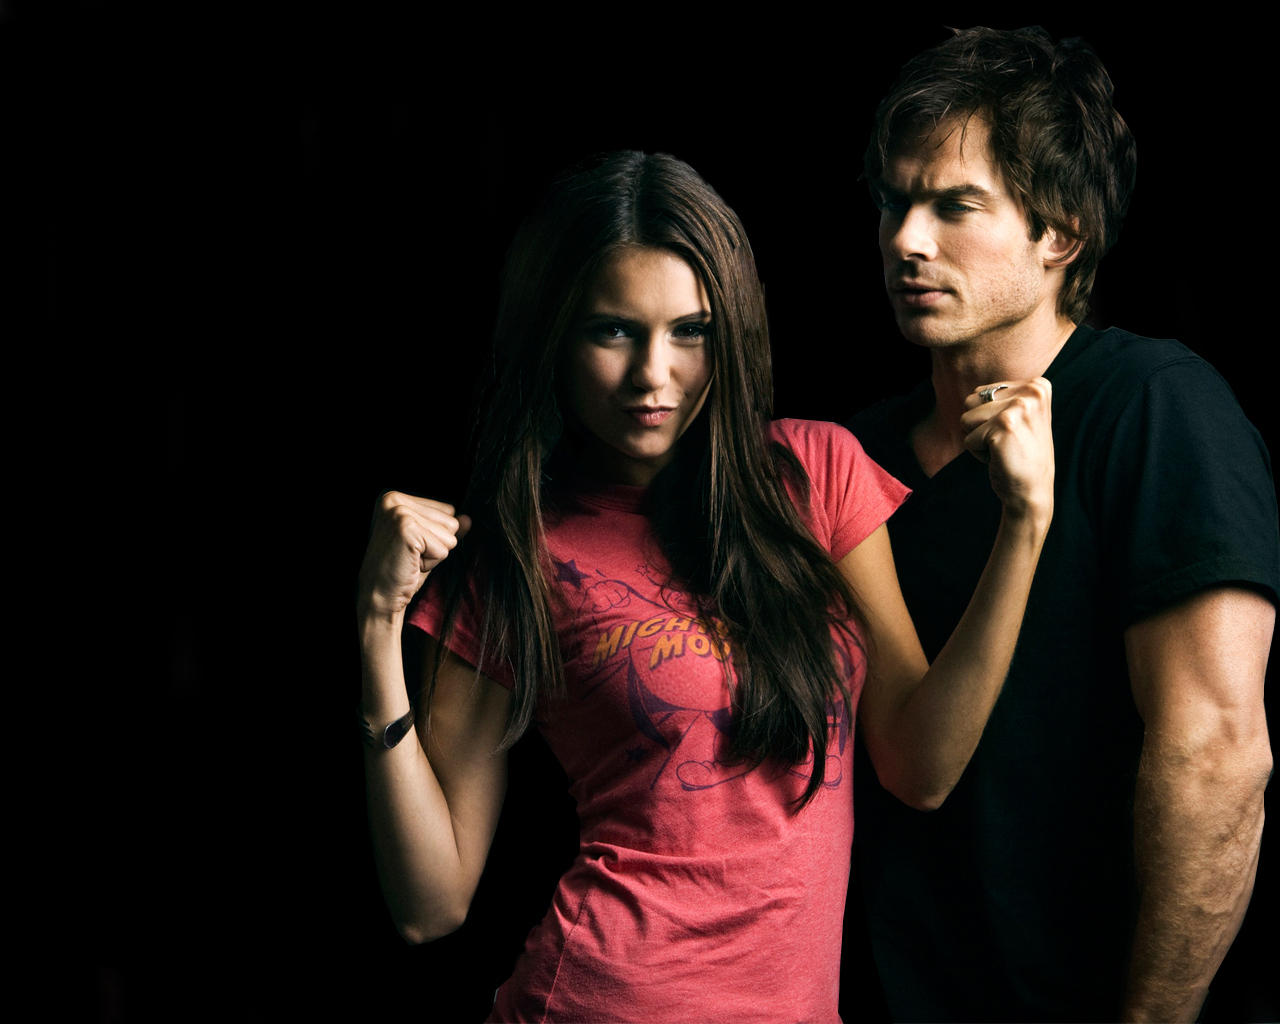 Ian somerhalder and nina dobrev interview about dating relationships 2